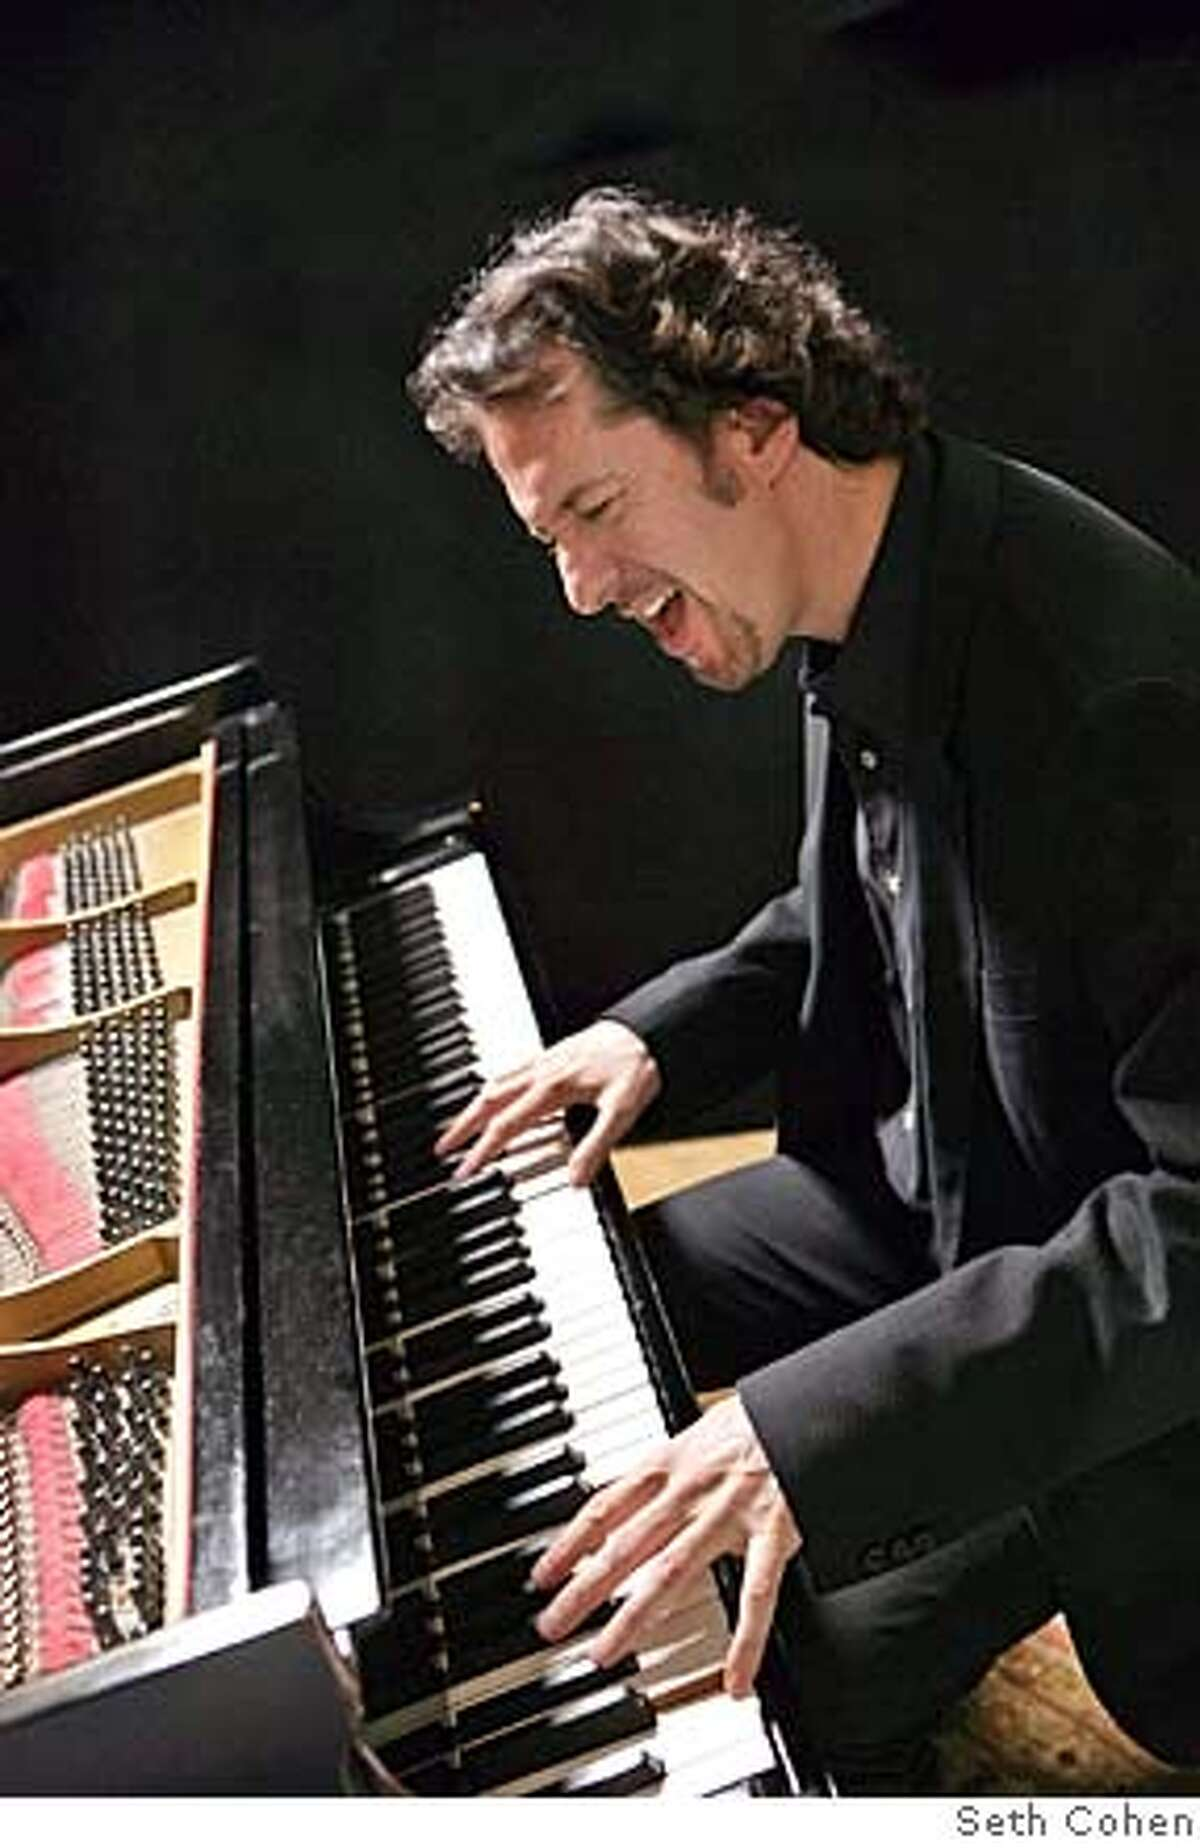 jazz pianist Michael Wolff will be coming to San Francisco on Feb 25 for a performance at Yoshi�s. The night before, on Feb 24, Wolff will perform in nearby Half Moon Bay, at Bach, Dancing, Dynamite Society.